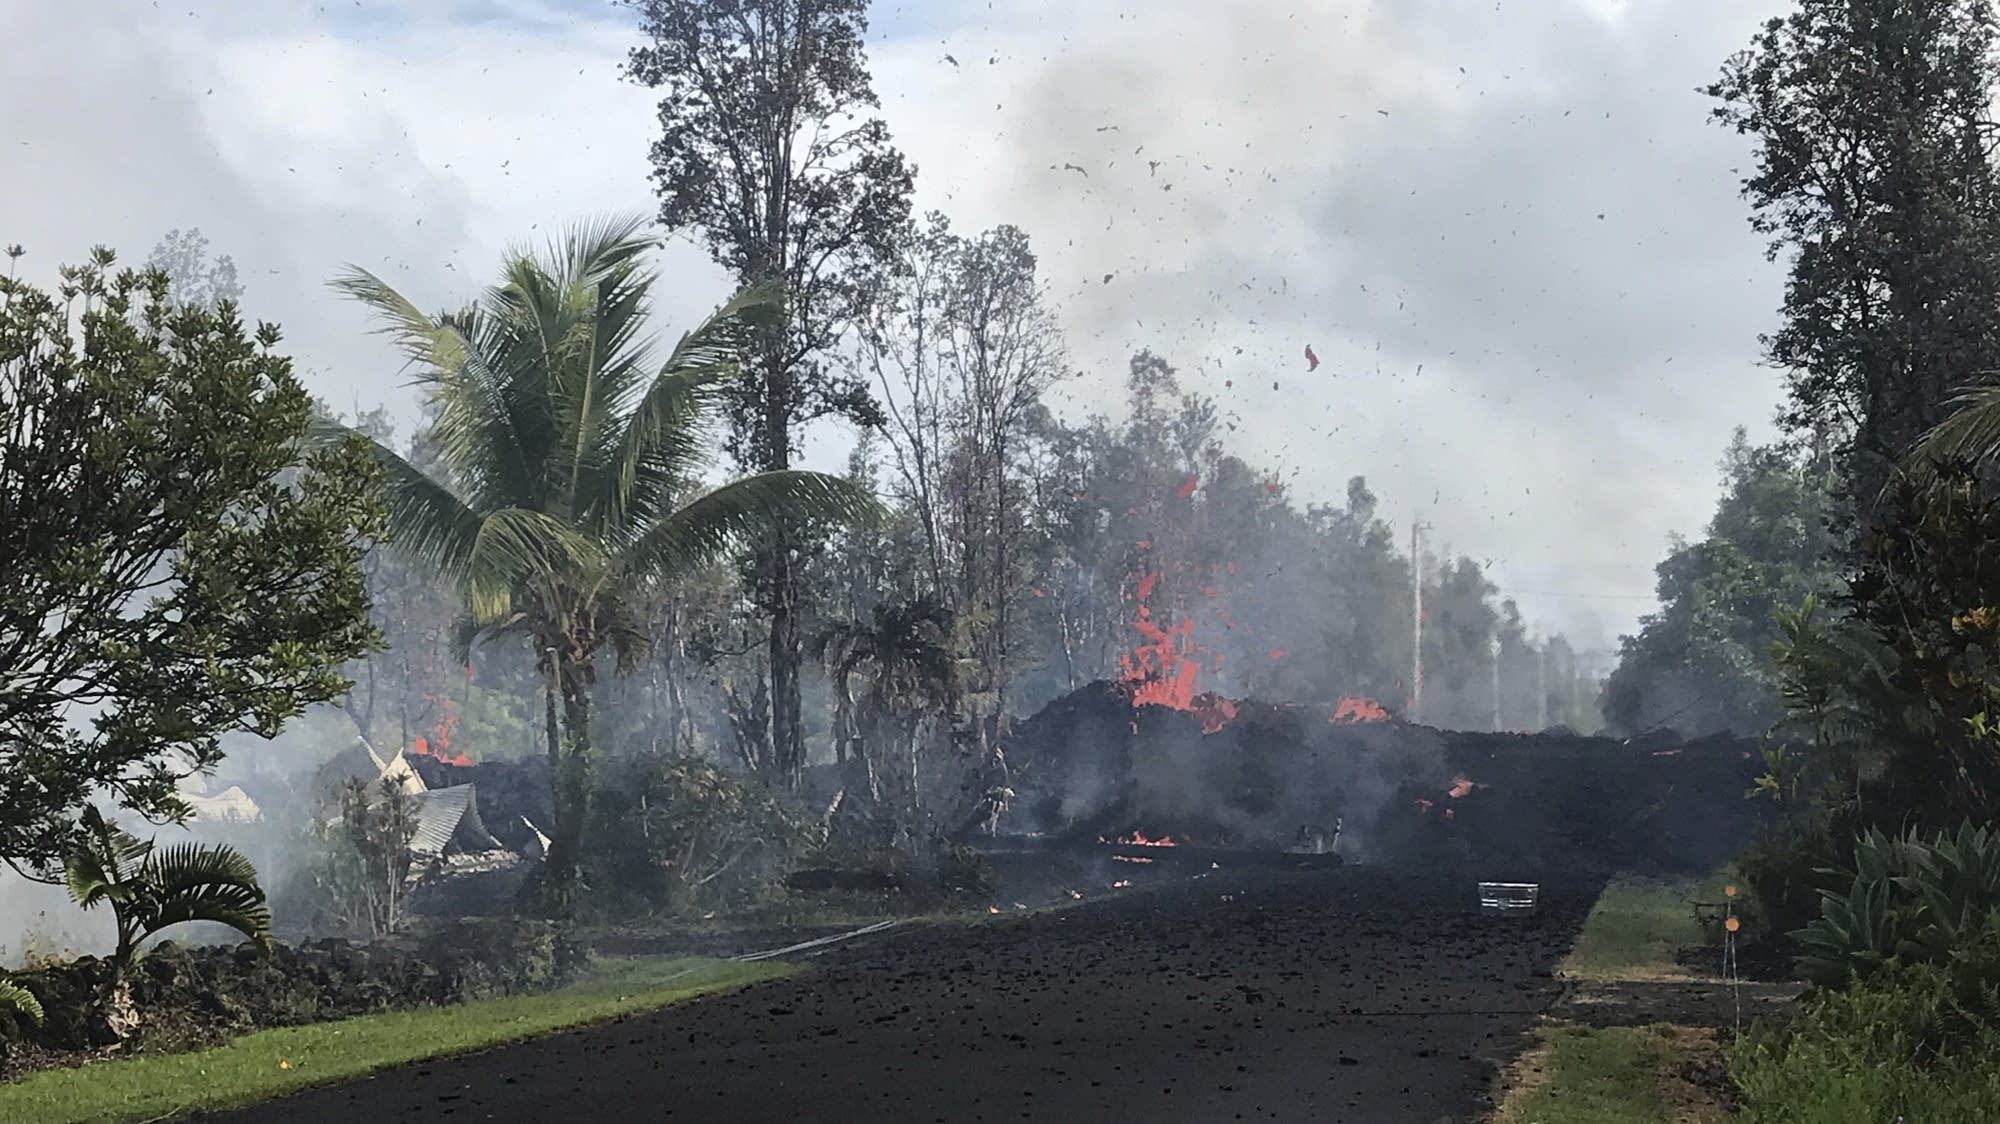 Erupting Volcano in Hawaii Releases Life-Threatening Toxic Gas (PHOTO, VIDEO)